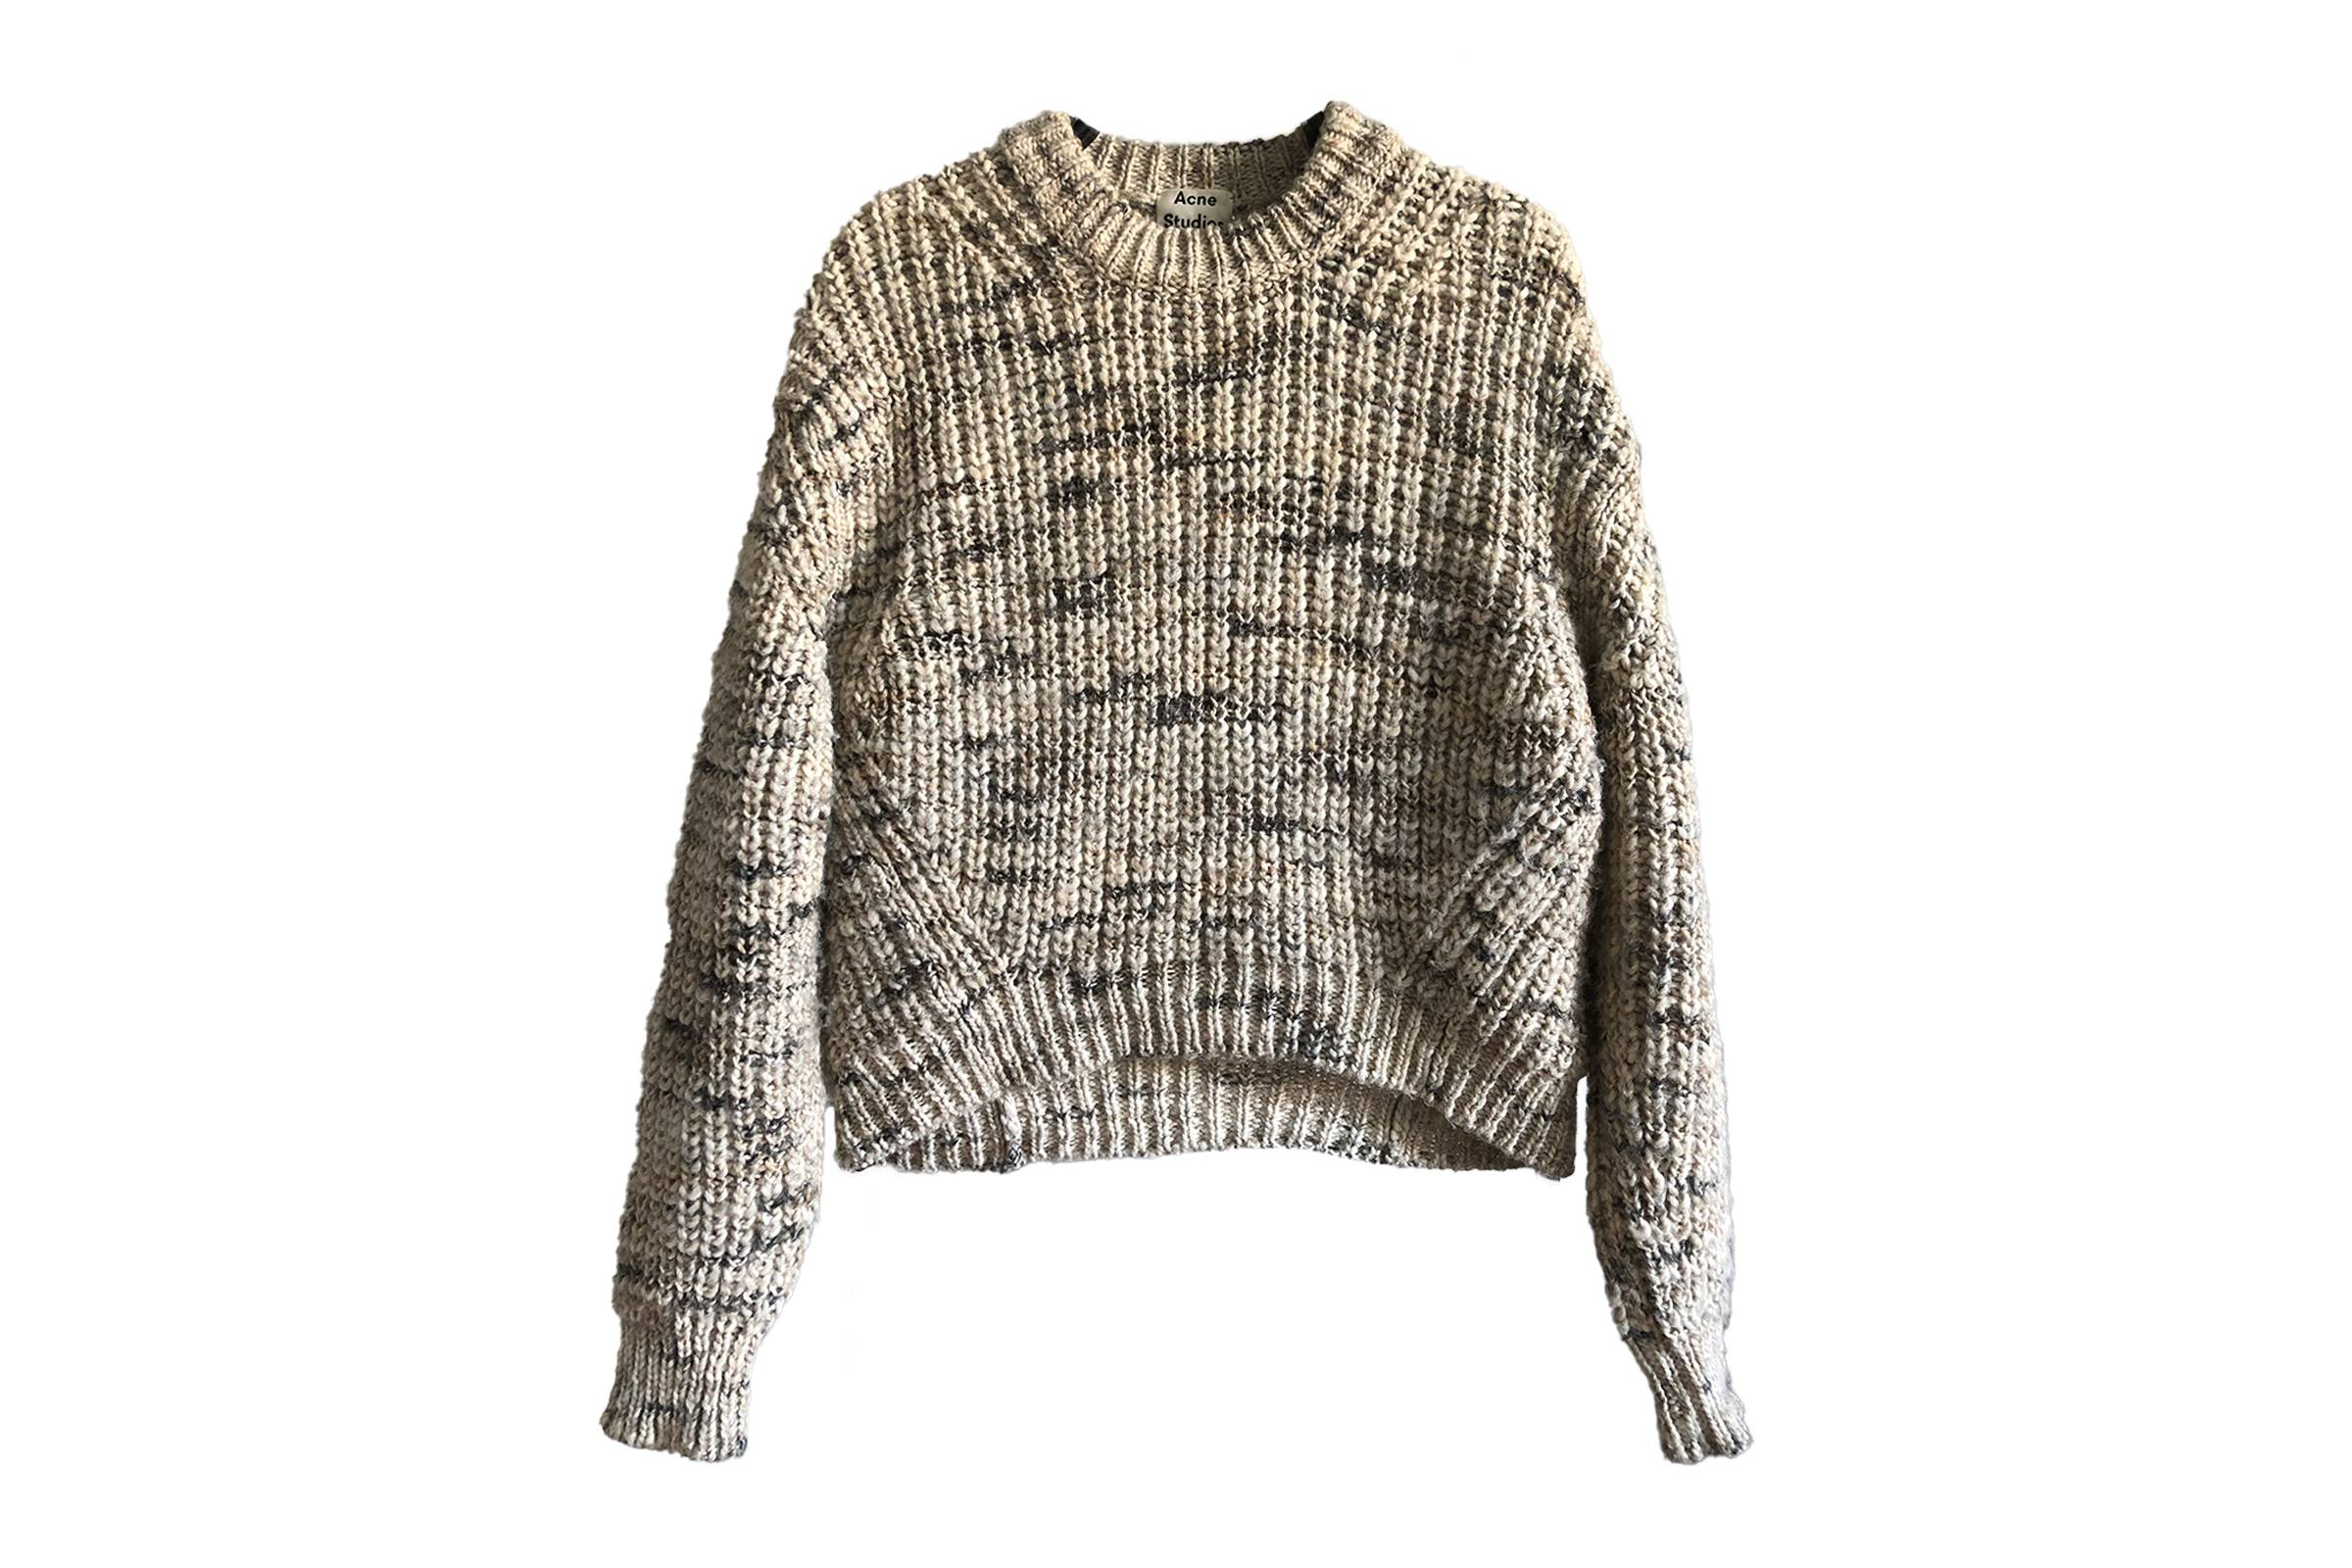 Acne Studios Spring/Summer 2018 Zora Knit Sweater